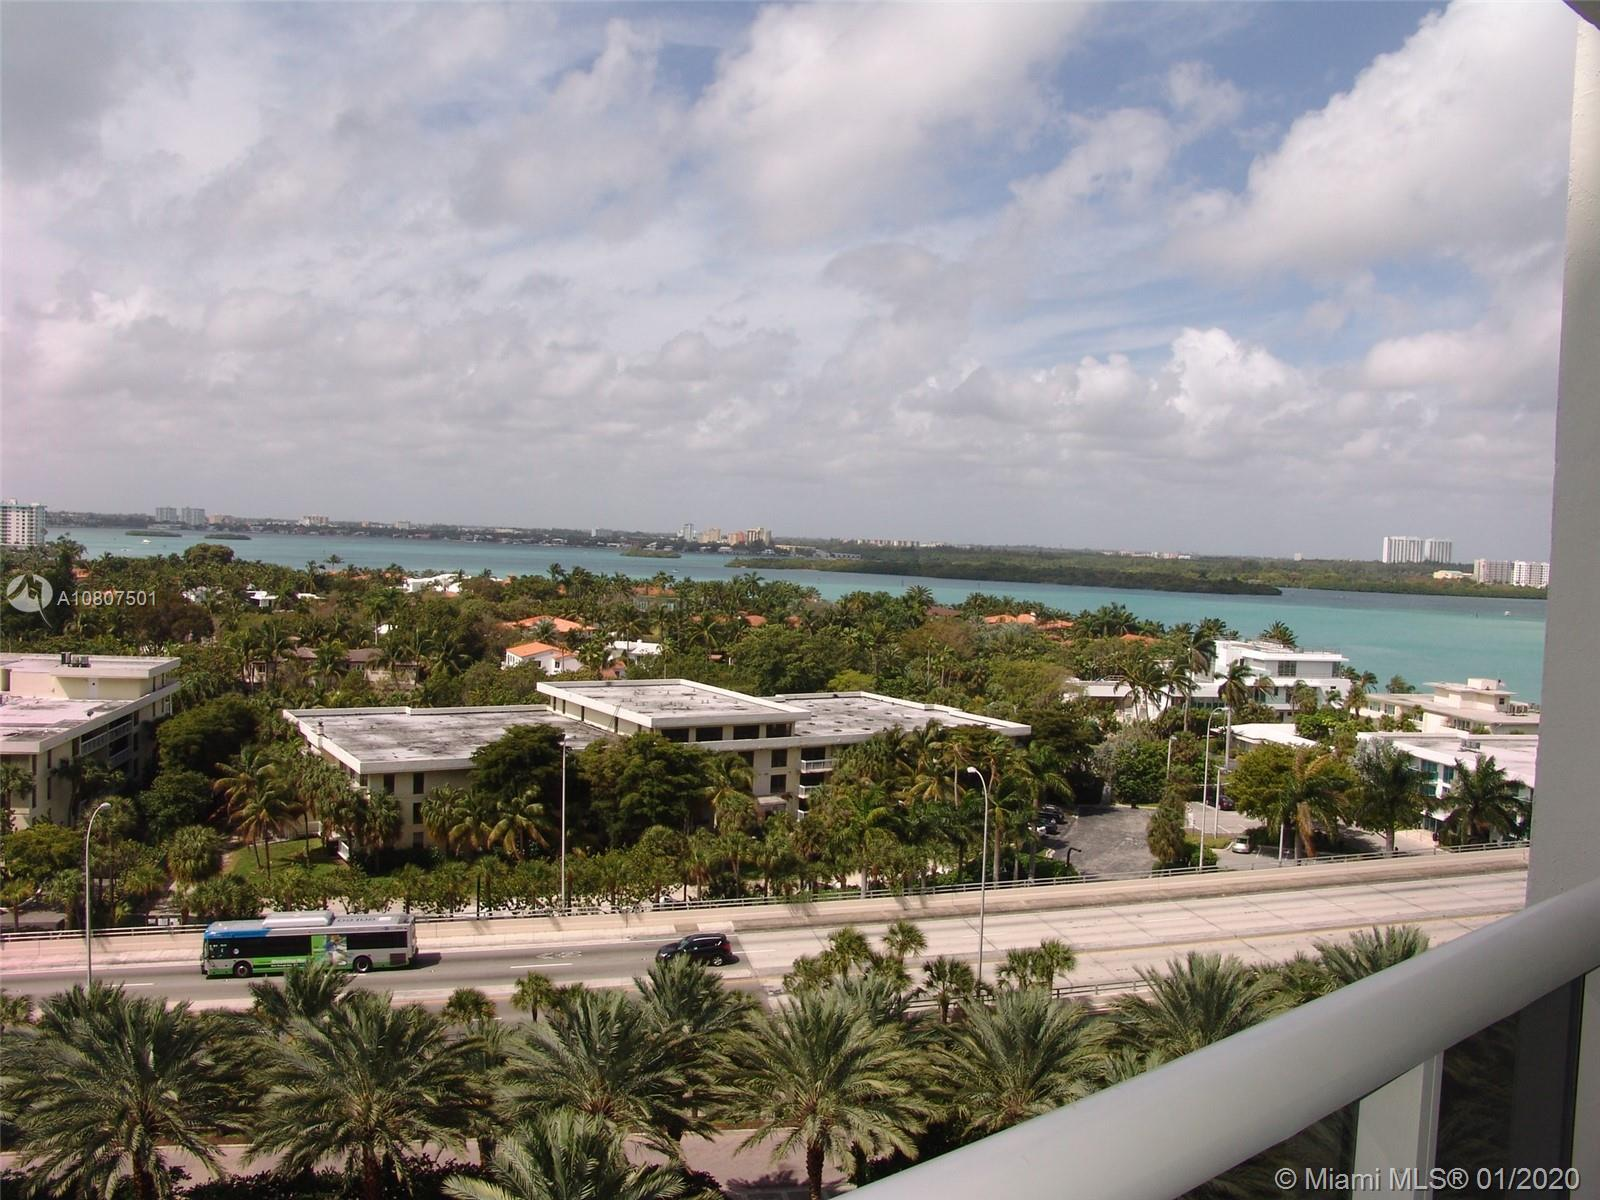 2 BED, 2 full BATHS unit on 11th floor with beautiful intracoastal view from extra deep balcony. Bal